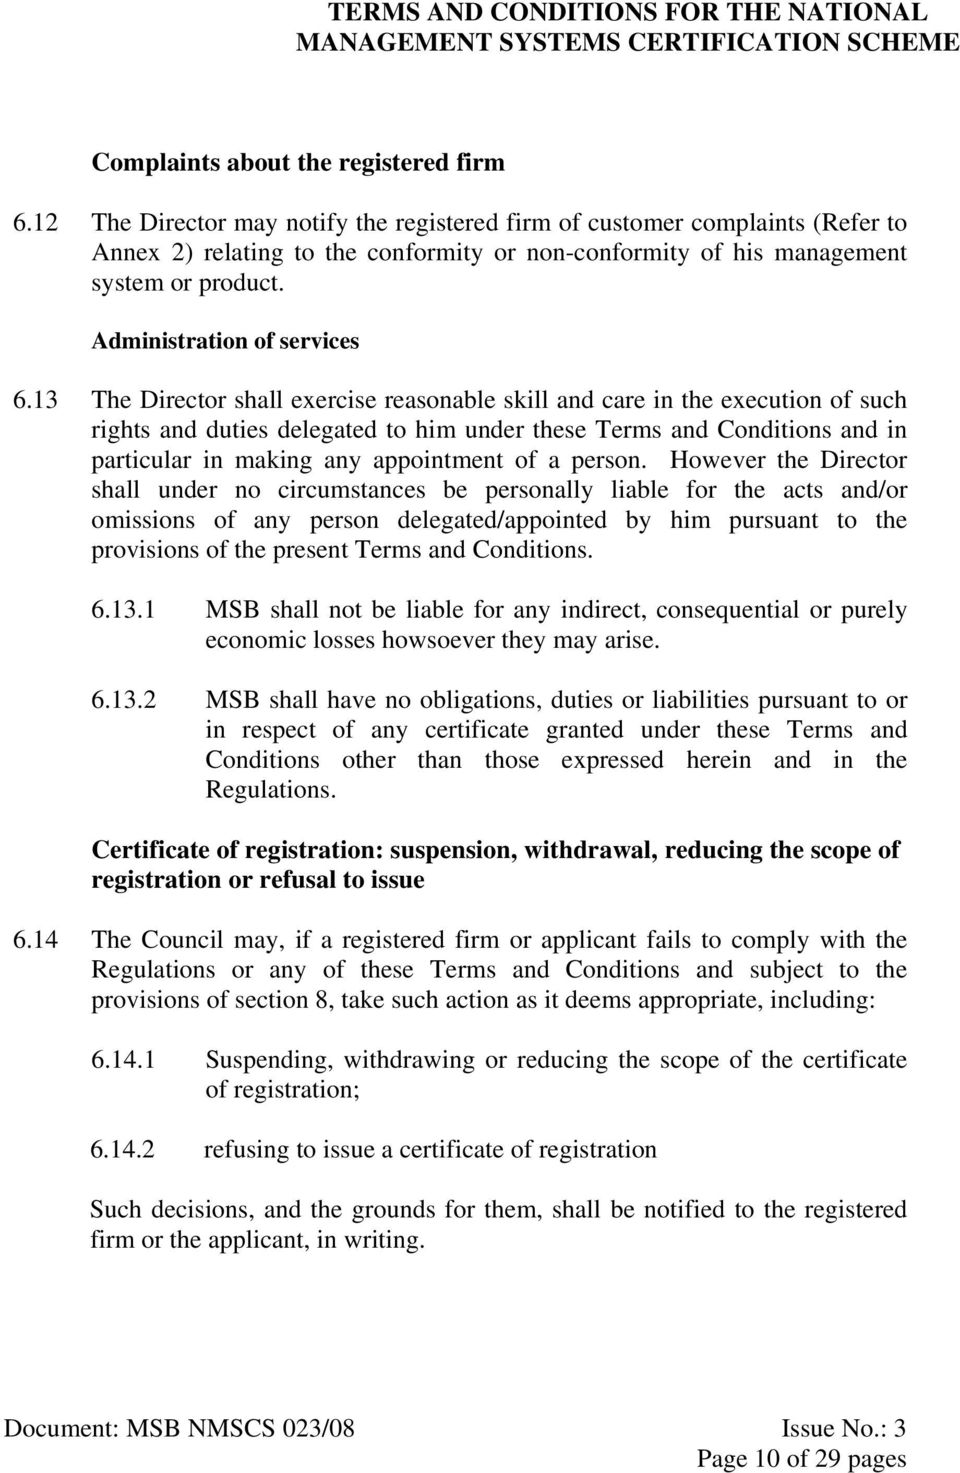 13 The Director shall exercise reasonable skill and care in the execution of such rights and duties delegated to him under these Terms and Conditions and in particular in making any appointment of a